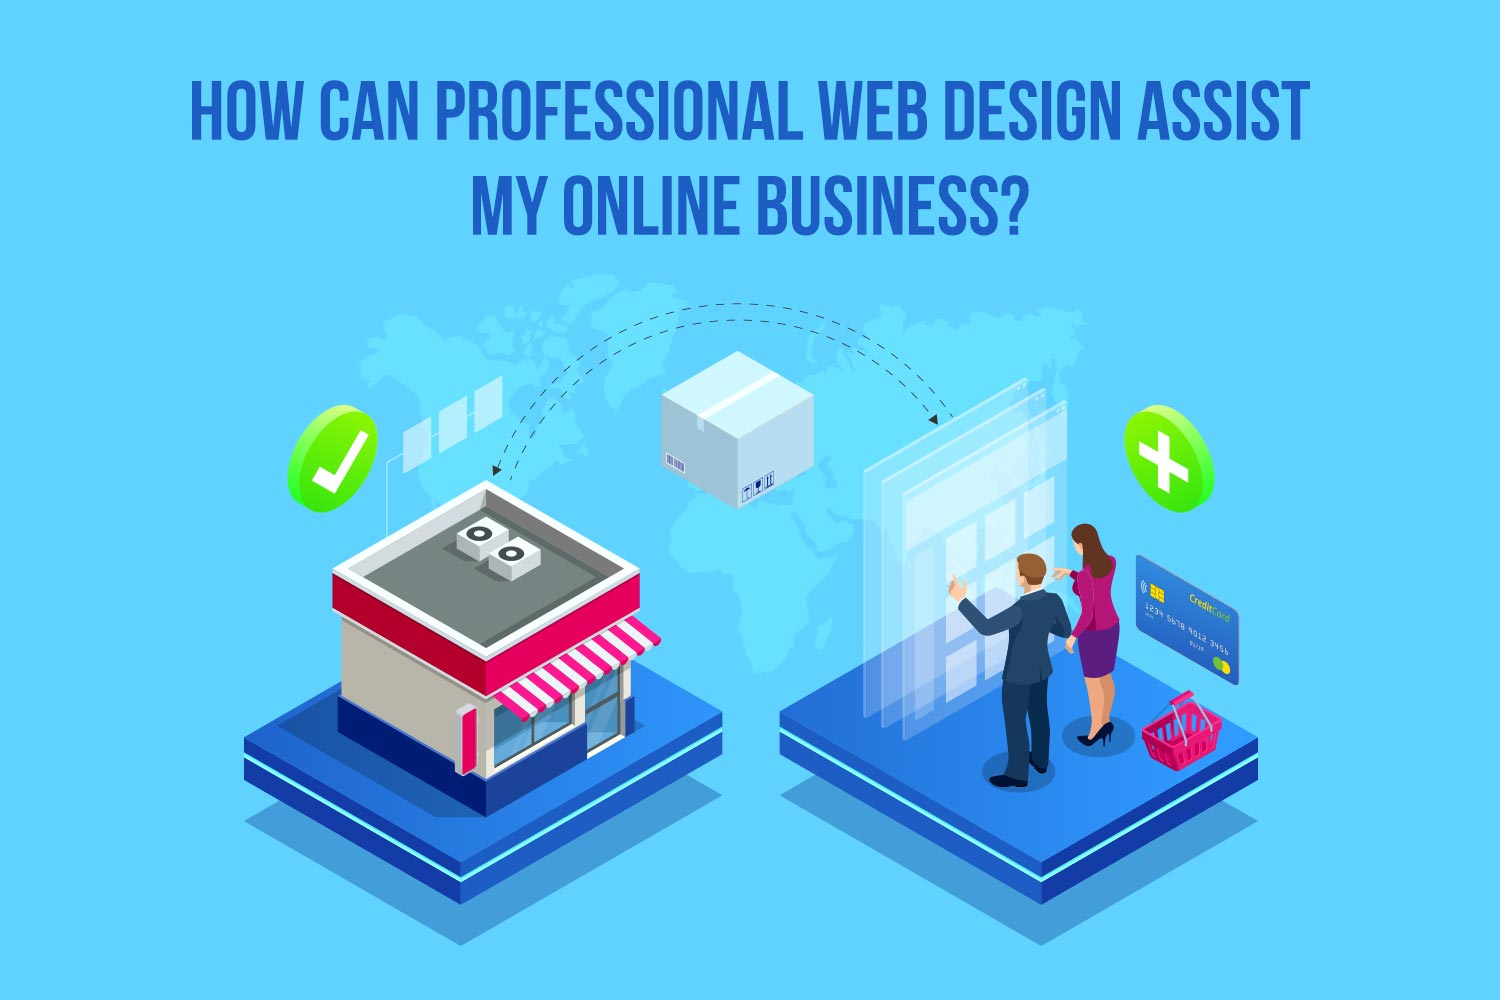 How-Can-Professional-Web-Design-Assist-My-Online-Business-Fina